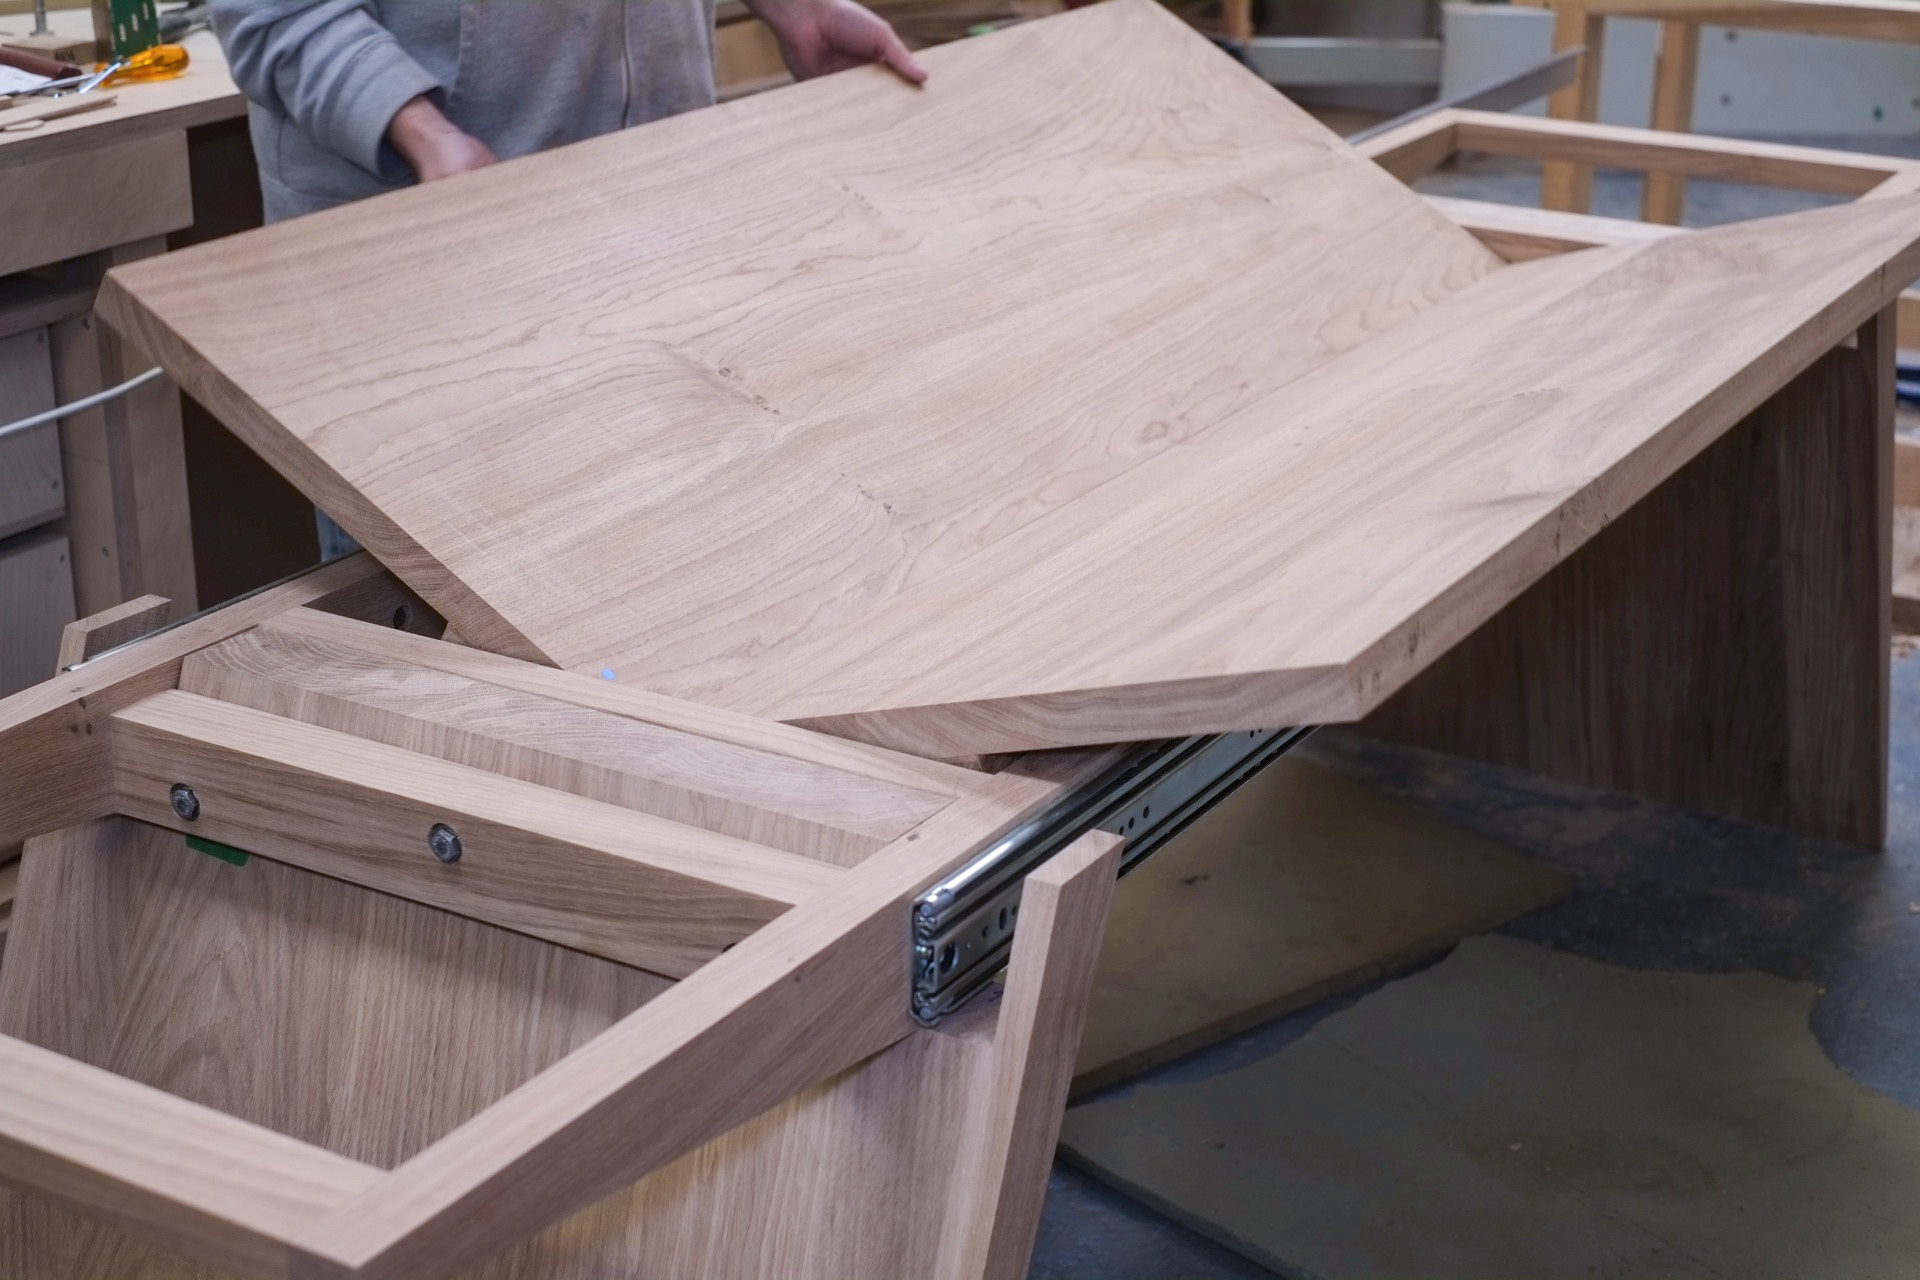 The fold out section of the dining table